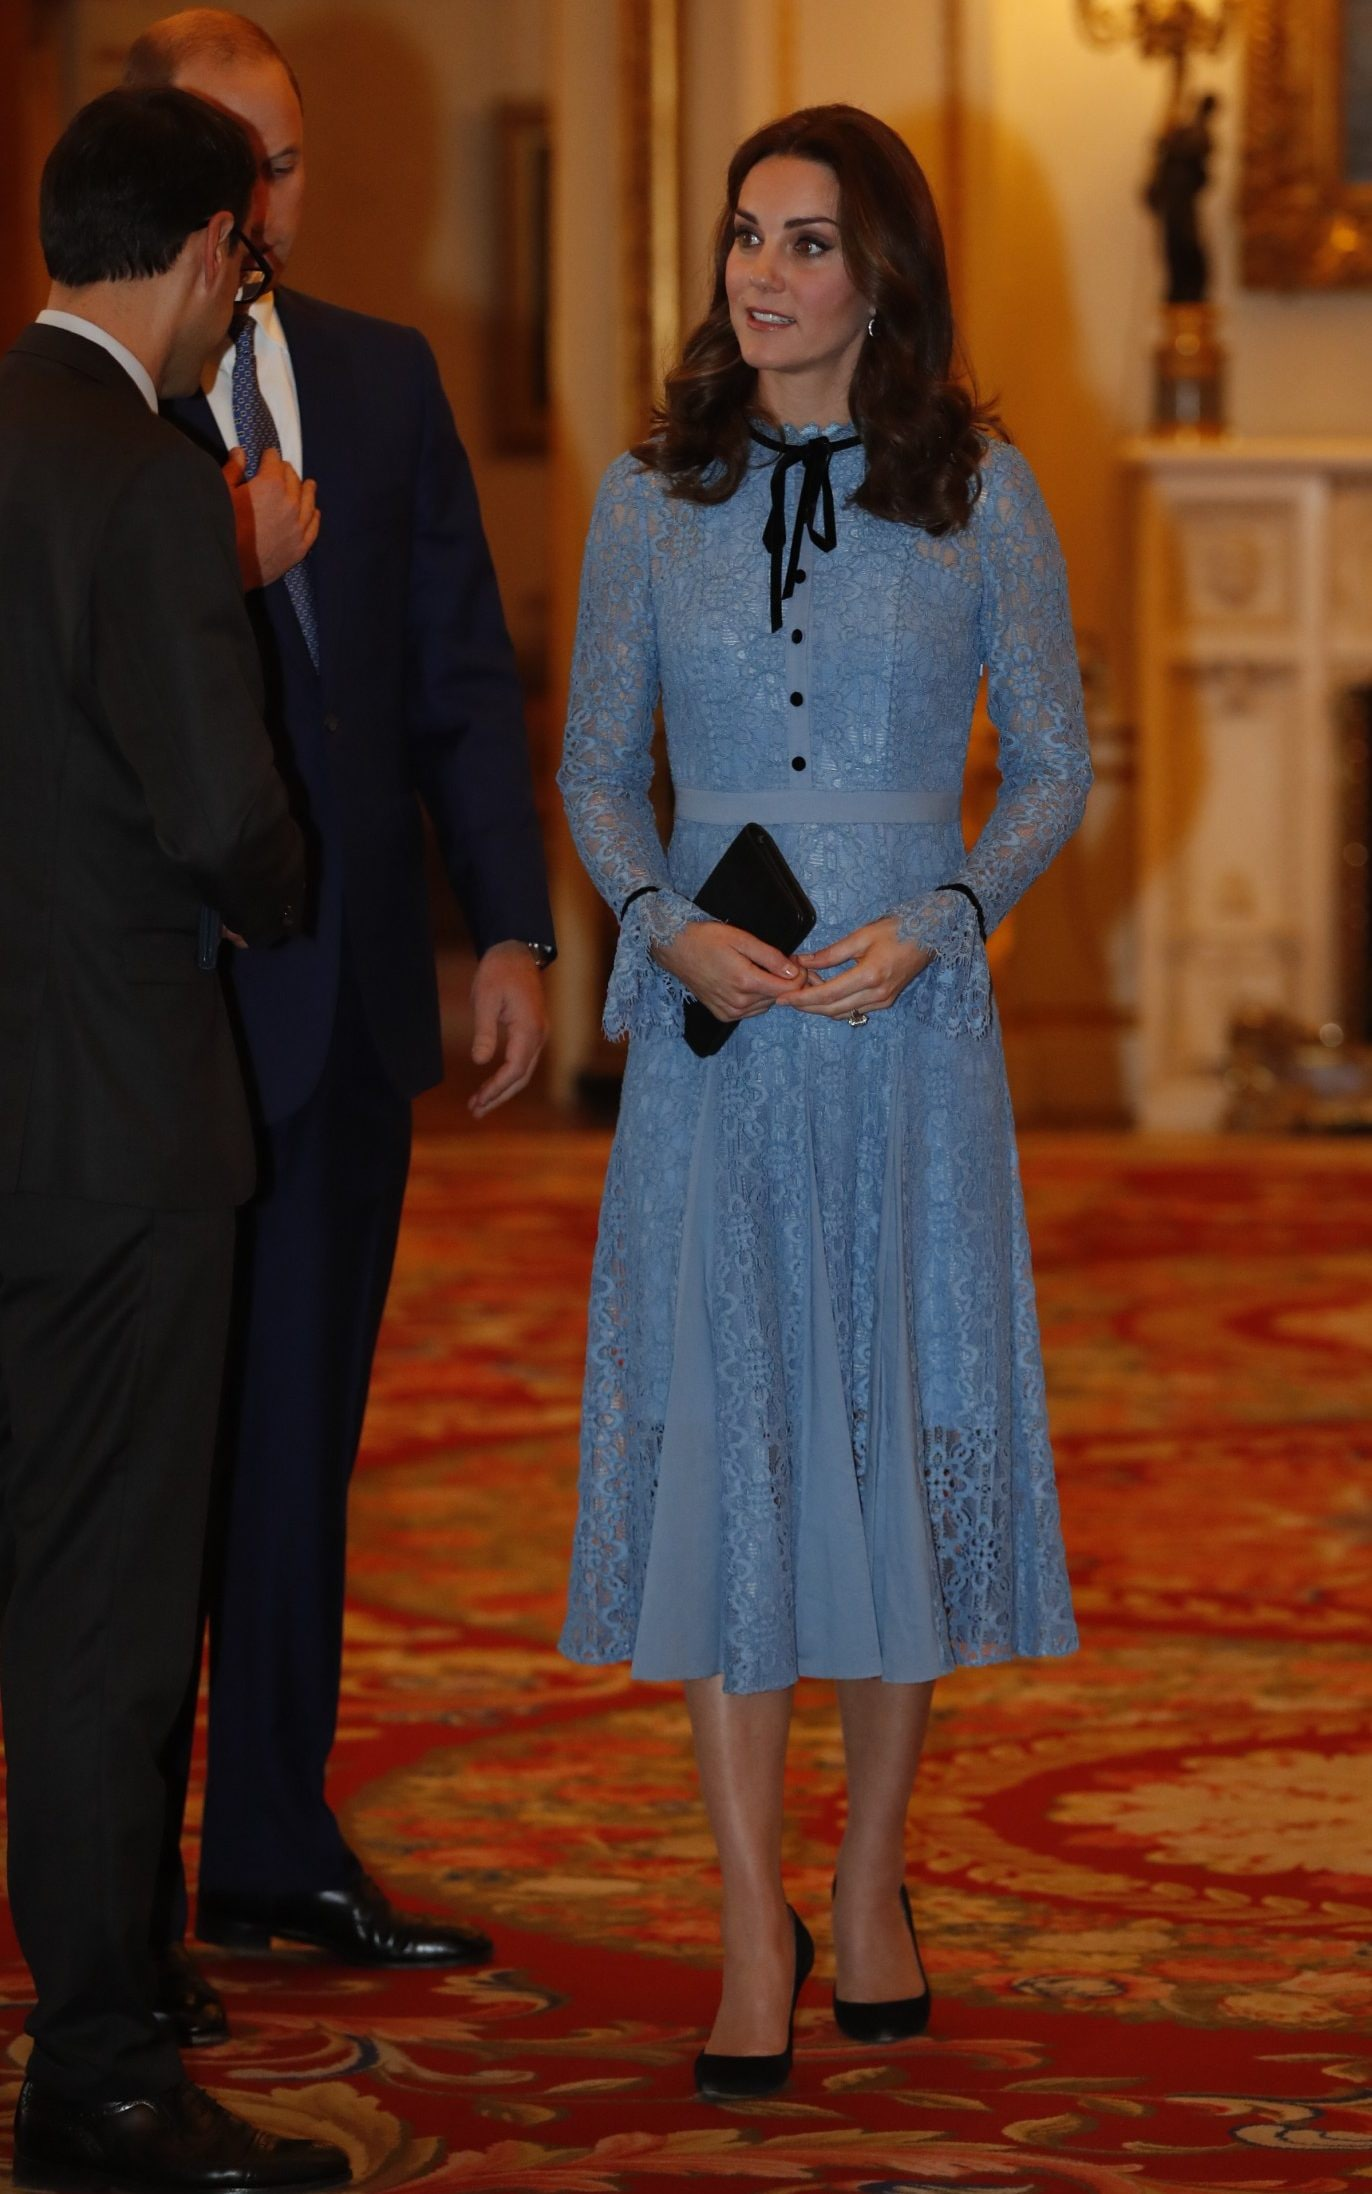 The Duchess' dress included black detailing, such as five buttons and a bow round the neckline